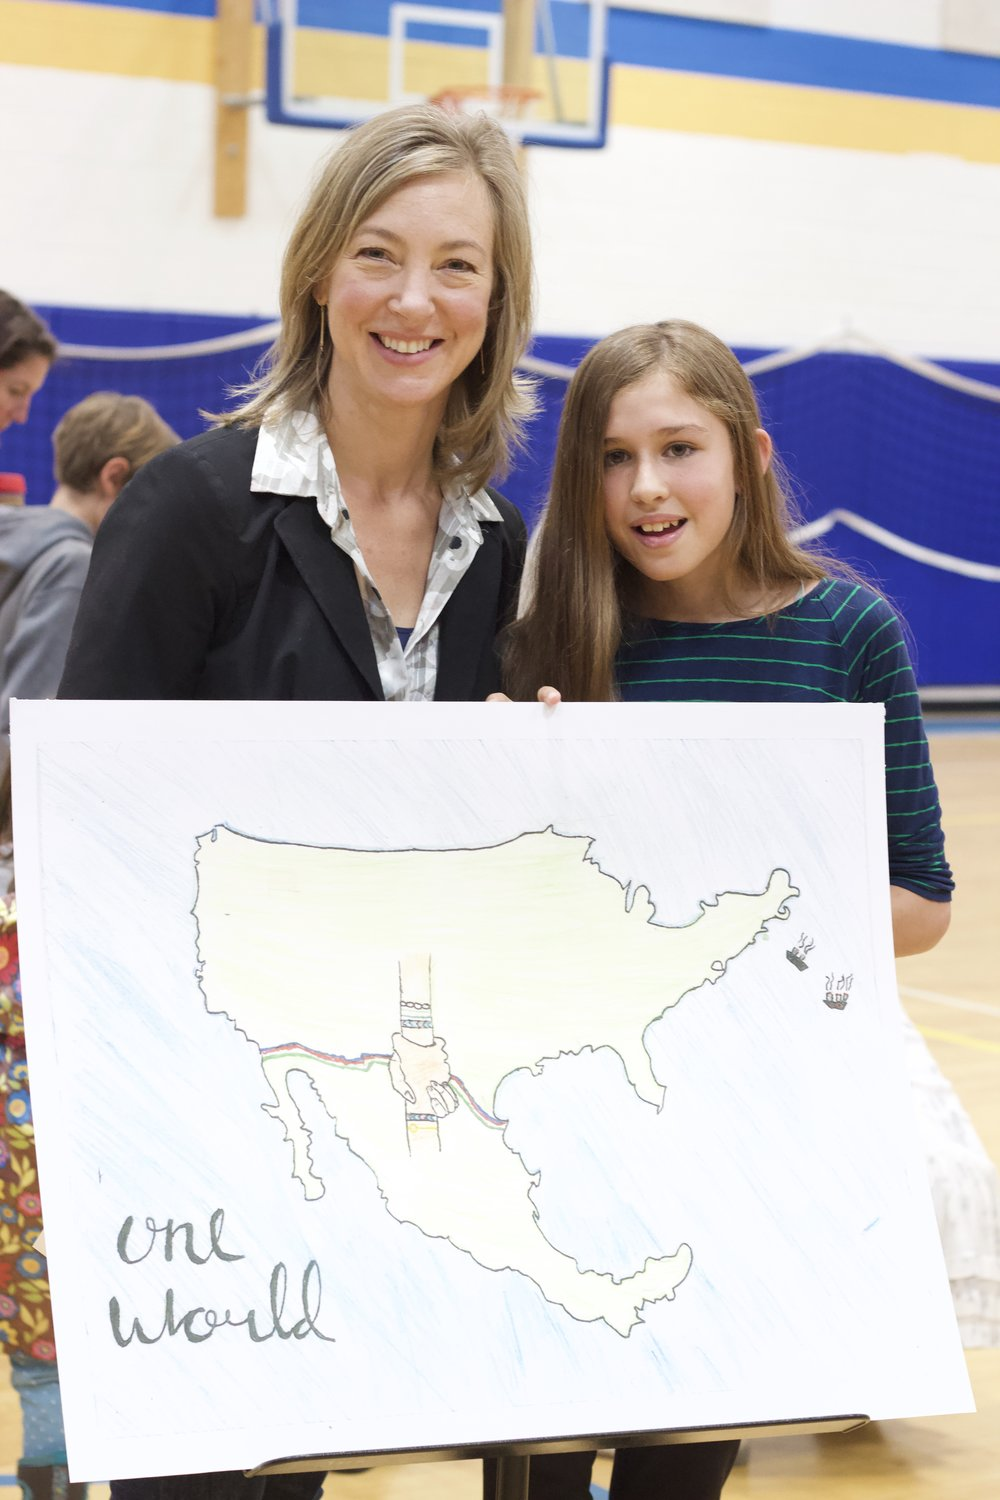 A Jackson Hole Middle School 6th grader, Elizabeth Prince's artwork, One World, won a $100 donation to the non-profit of her choice. Her gift to One22 is one of the first towards the Nunn Challenge Grant.